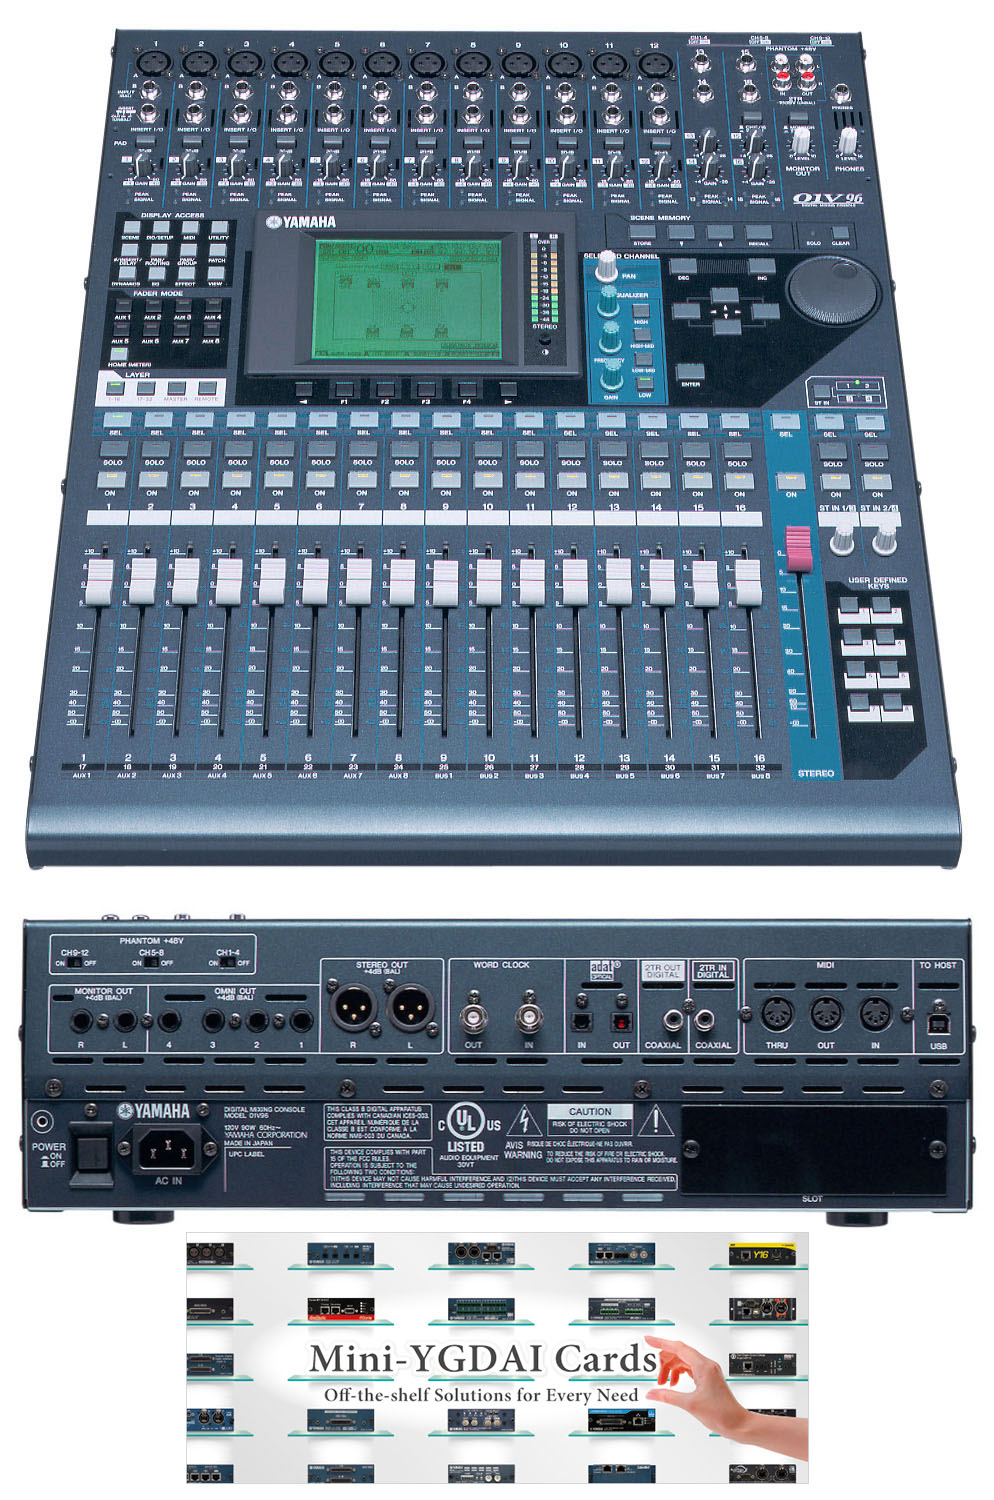 console configuration examples wave field synthesis diy rh wfs diy net Audio Mixer 01V96 Manual